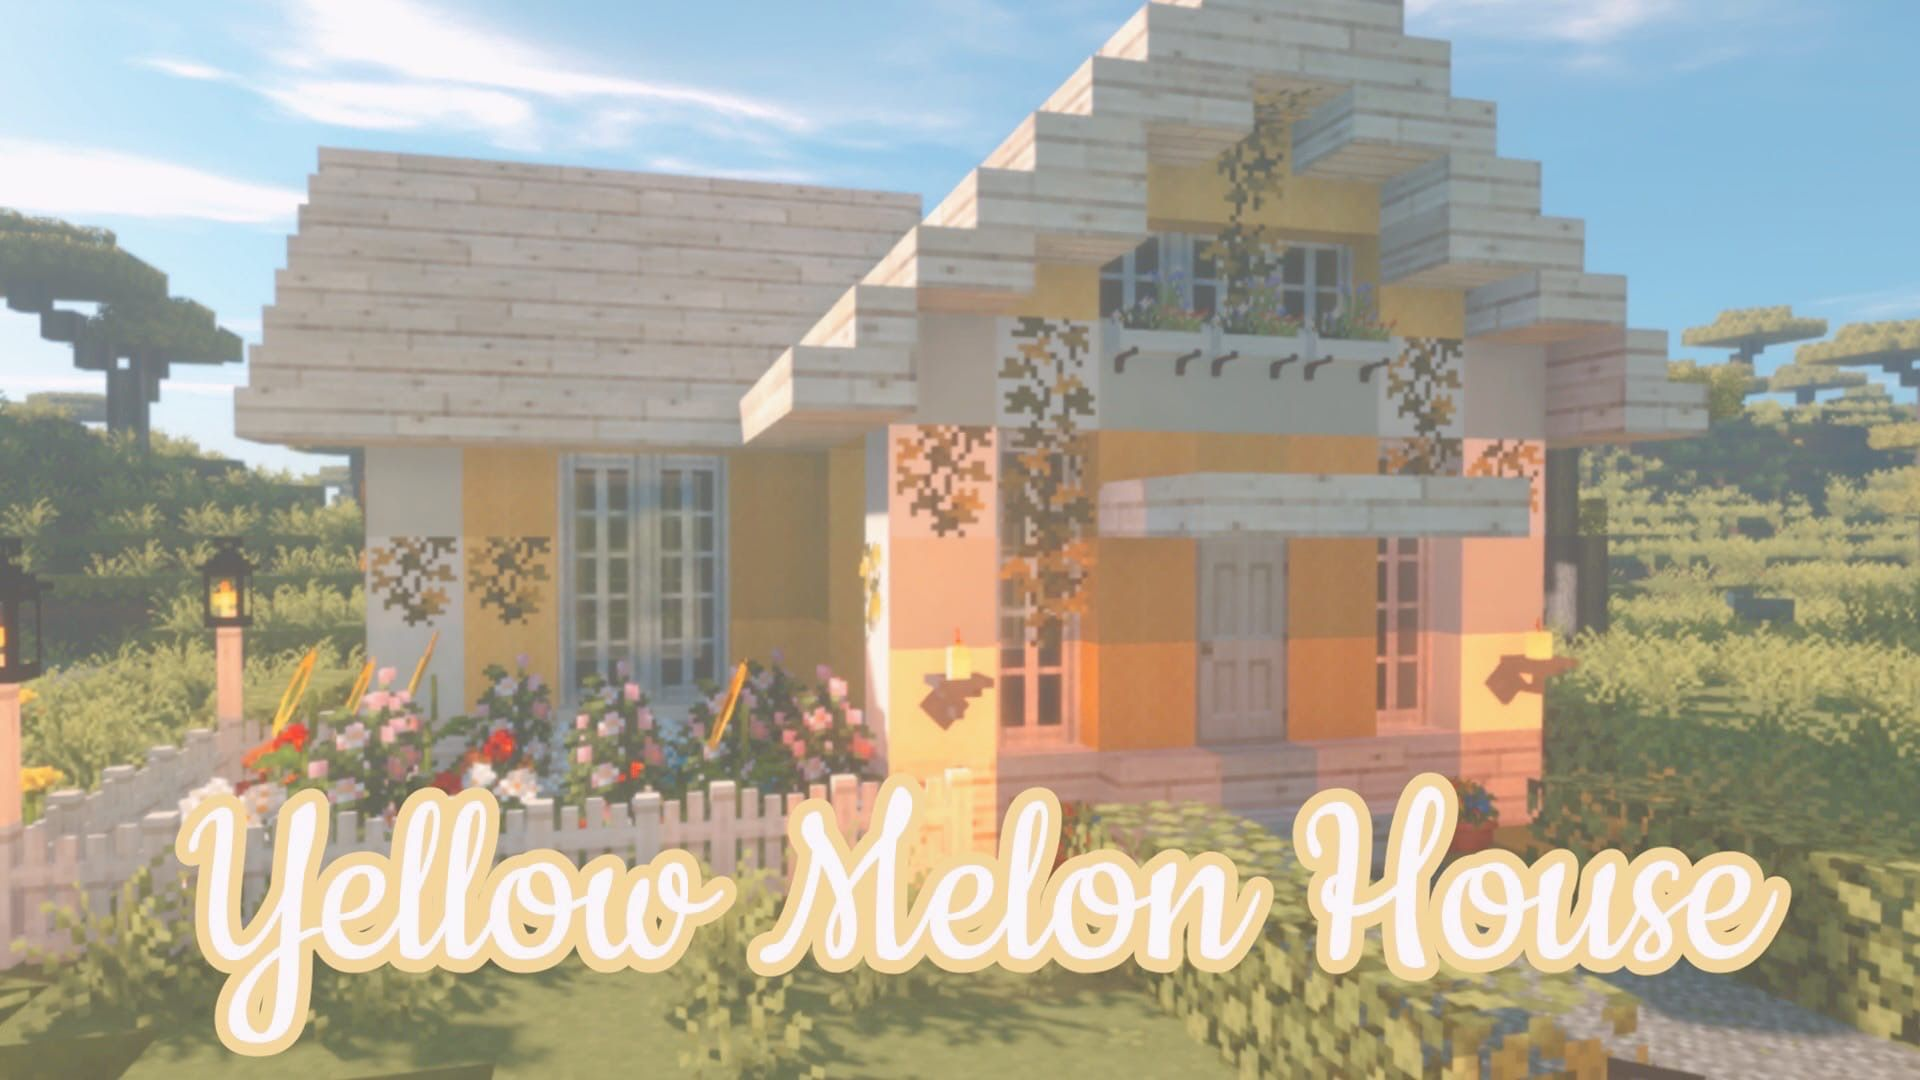 Cute Yellow Melon House How To Build Cute House In Minecraft In 2020 Cute Minecraft Houses Minecraft House Designs Minecraft Designs